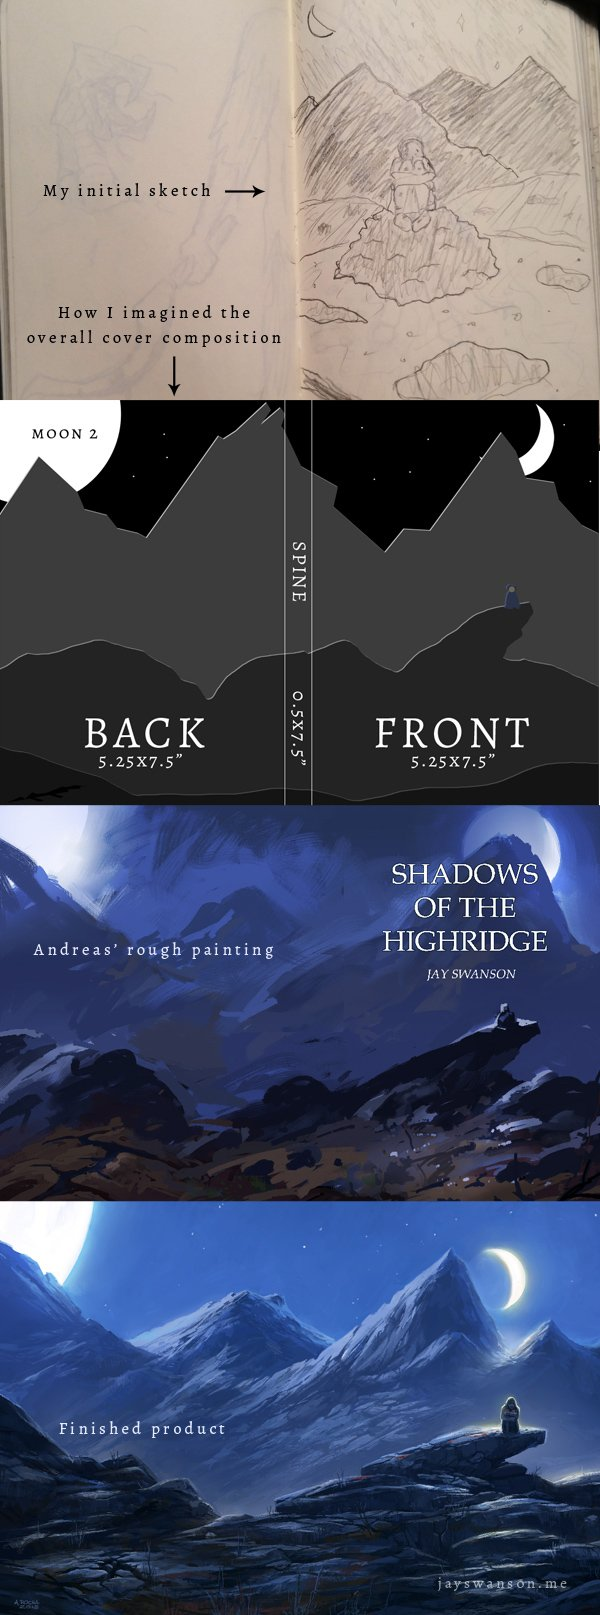 Shadows-of-the-Highridge-Cover-Progression